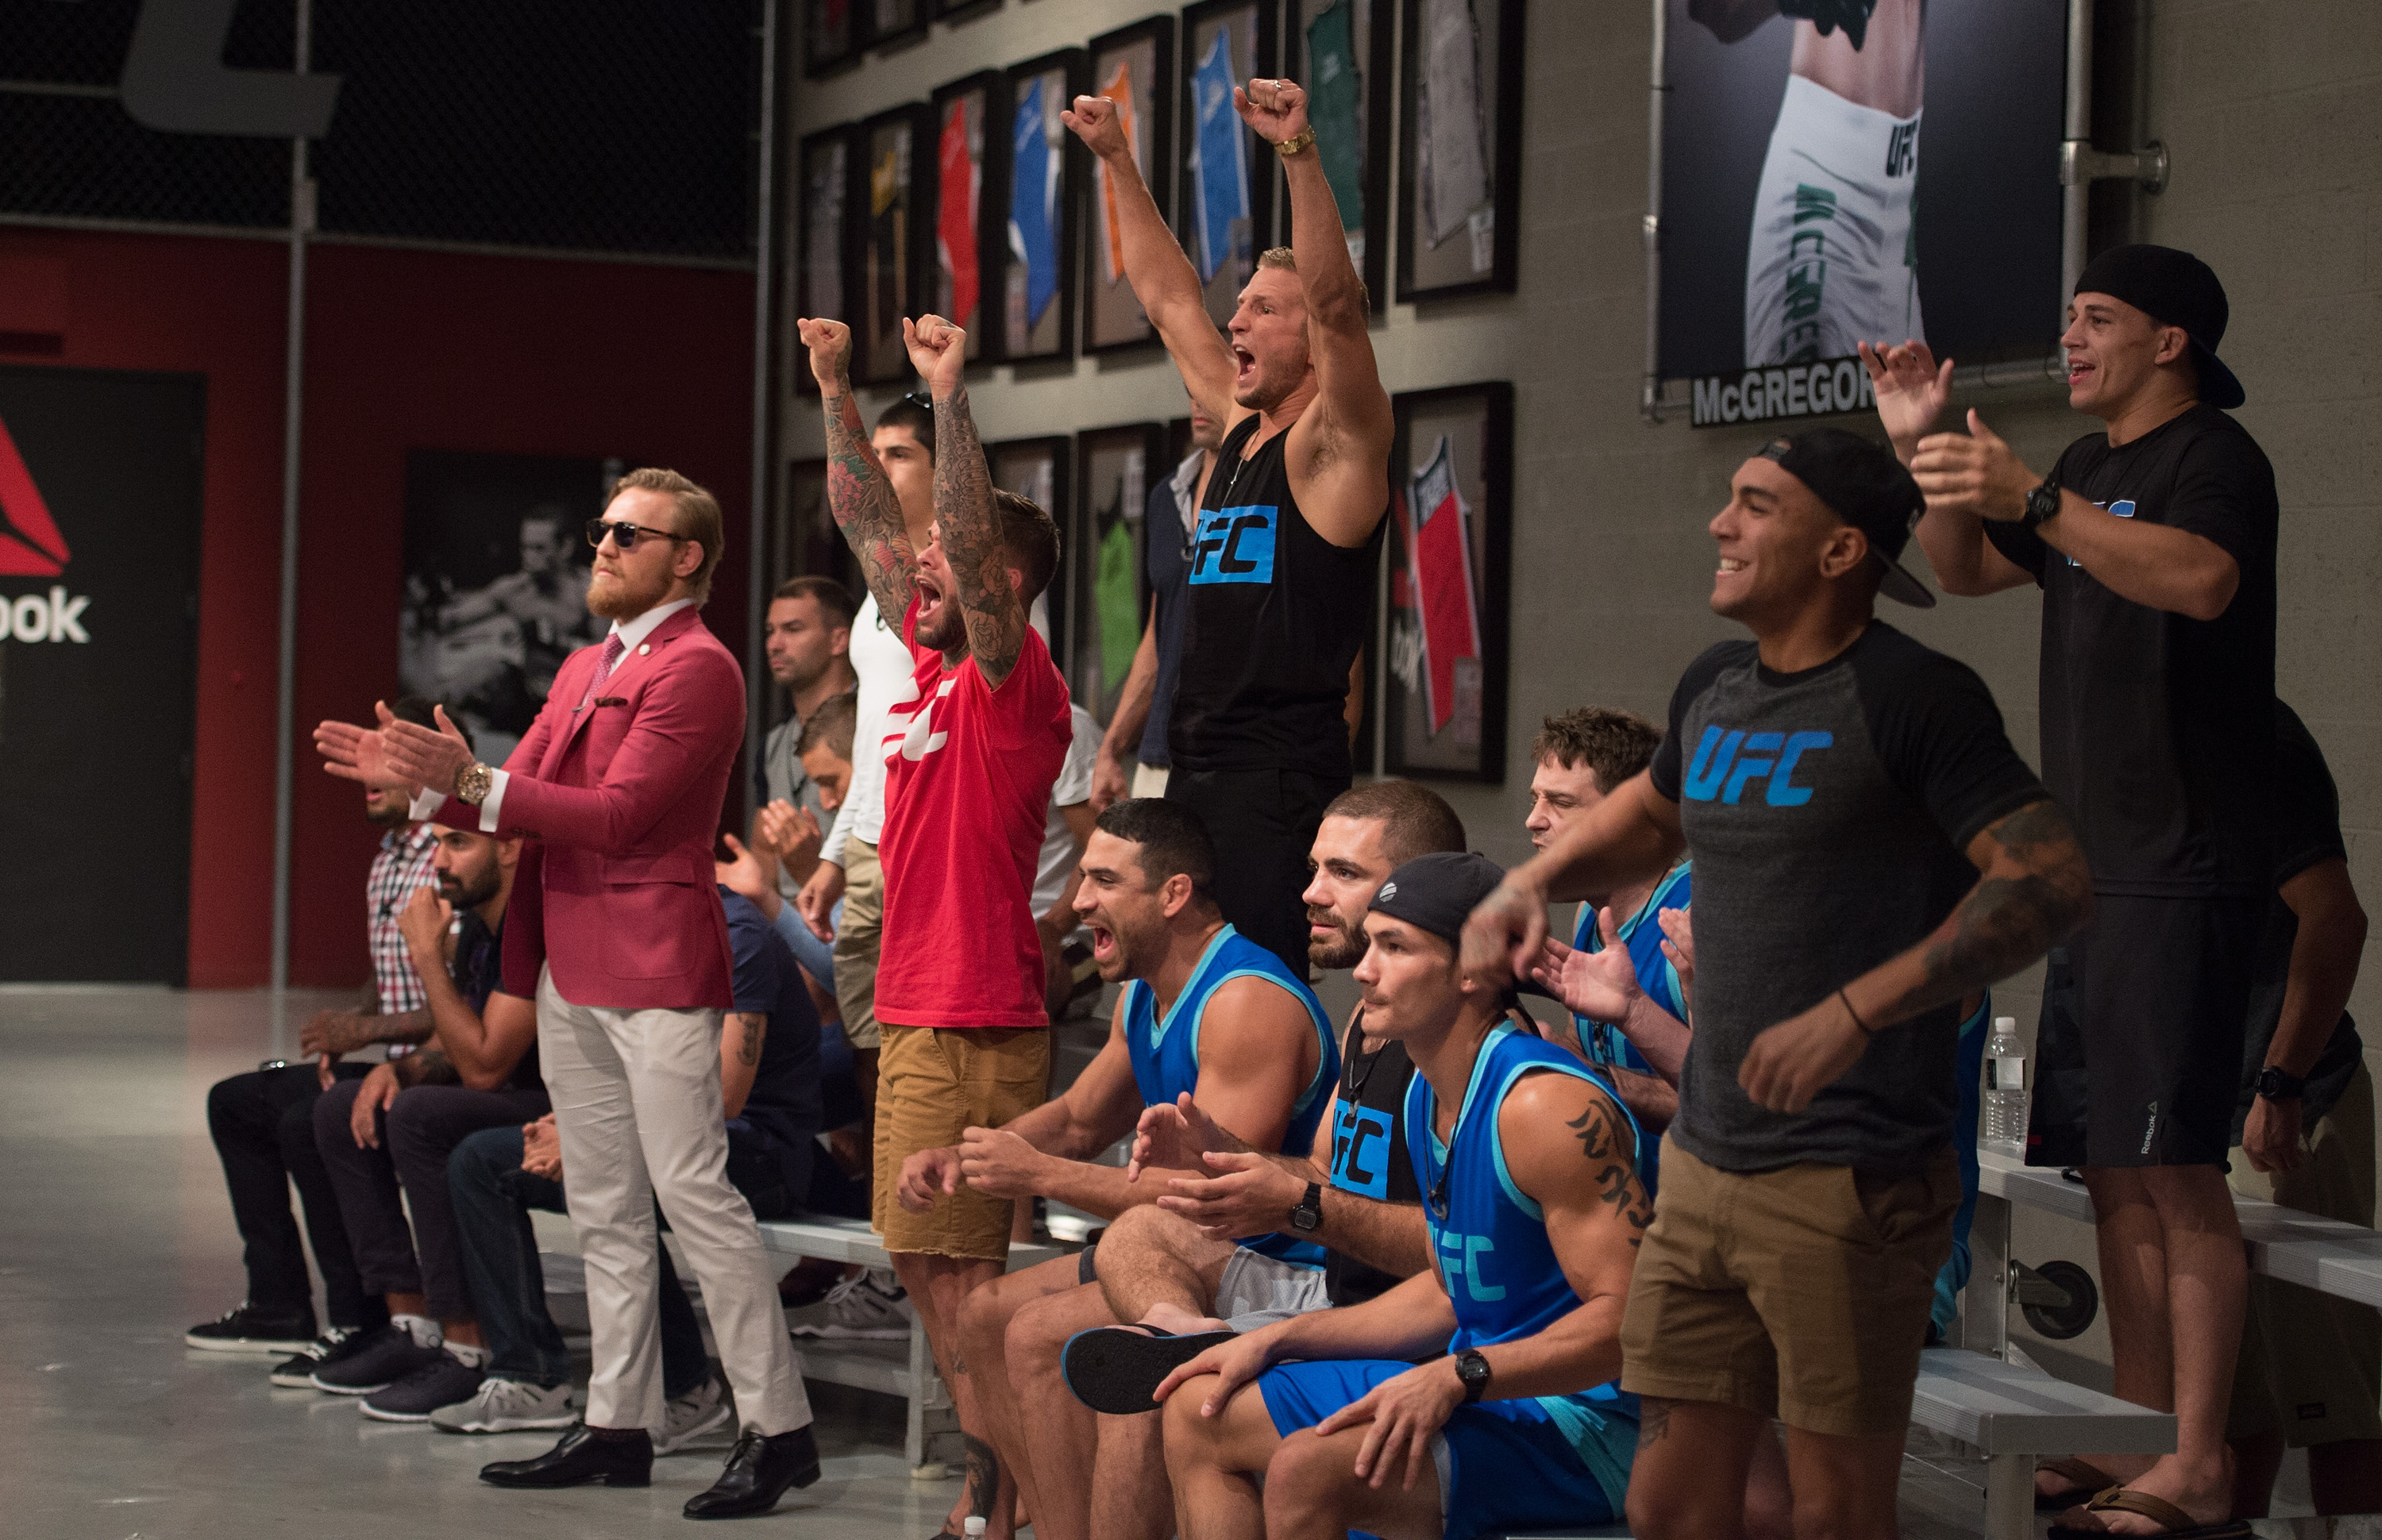 Team McGregor and Team Faber cheer as they watch Mehdi Baghdad face Julian Erosa during the filming of The Ultimate Fighter: Team McGregor vs Team Faber at the UFC TUF Gym on August 5, 2015 in Las Vegas, Nevada. (Photo by Elliot Howard/Zuffa LLC)